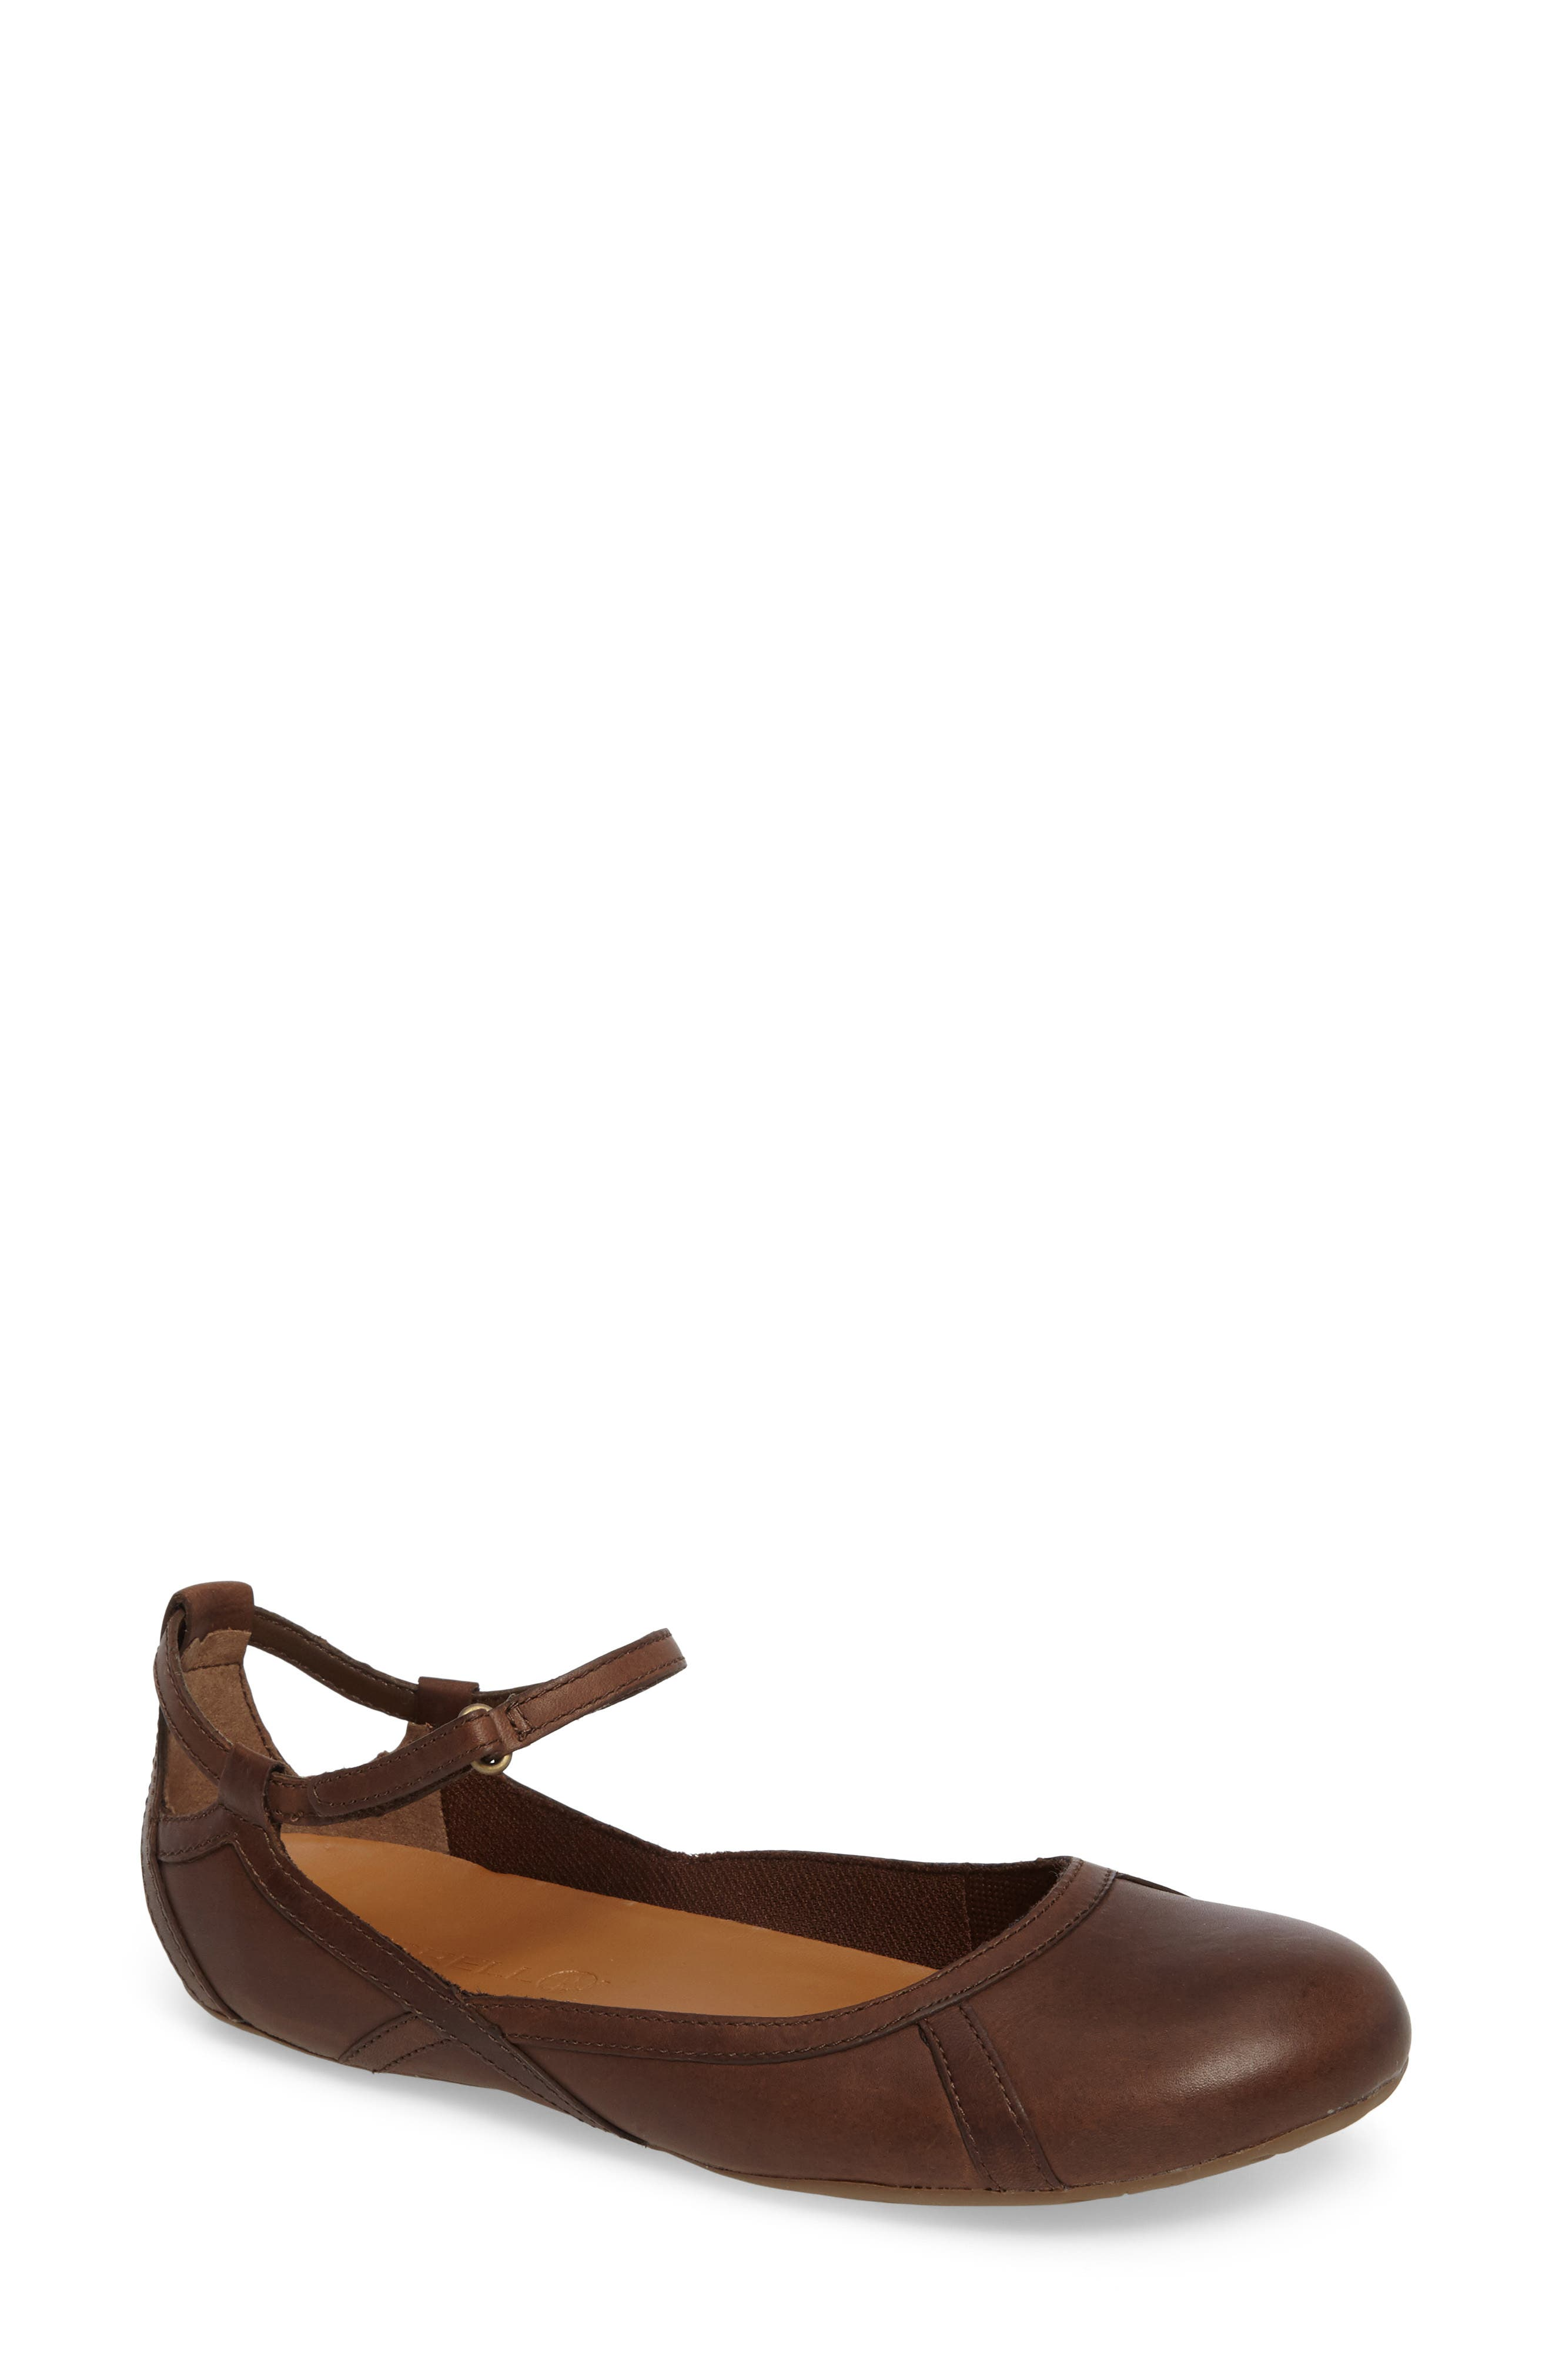 Merrell Ember Bluff Mary Jane Flat (Women)